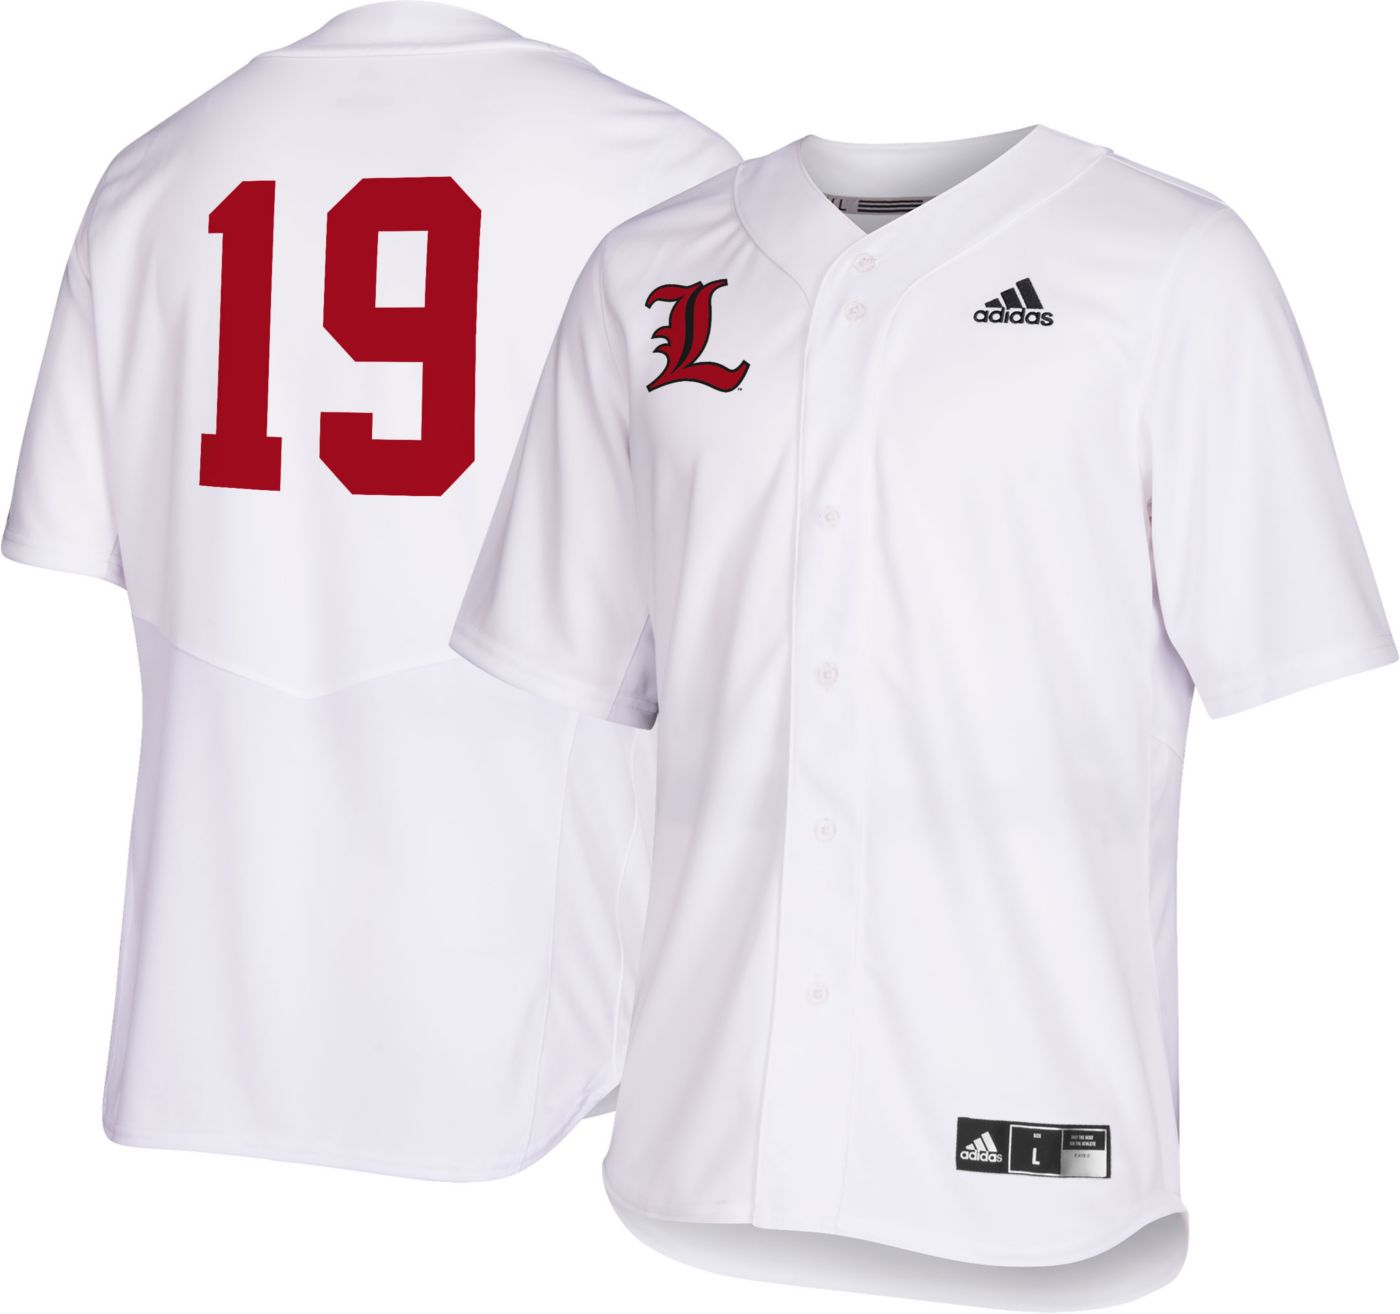 adidas Men's Louisville Cardinals #19 Replica Baseball White Jersey